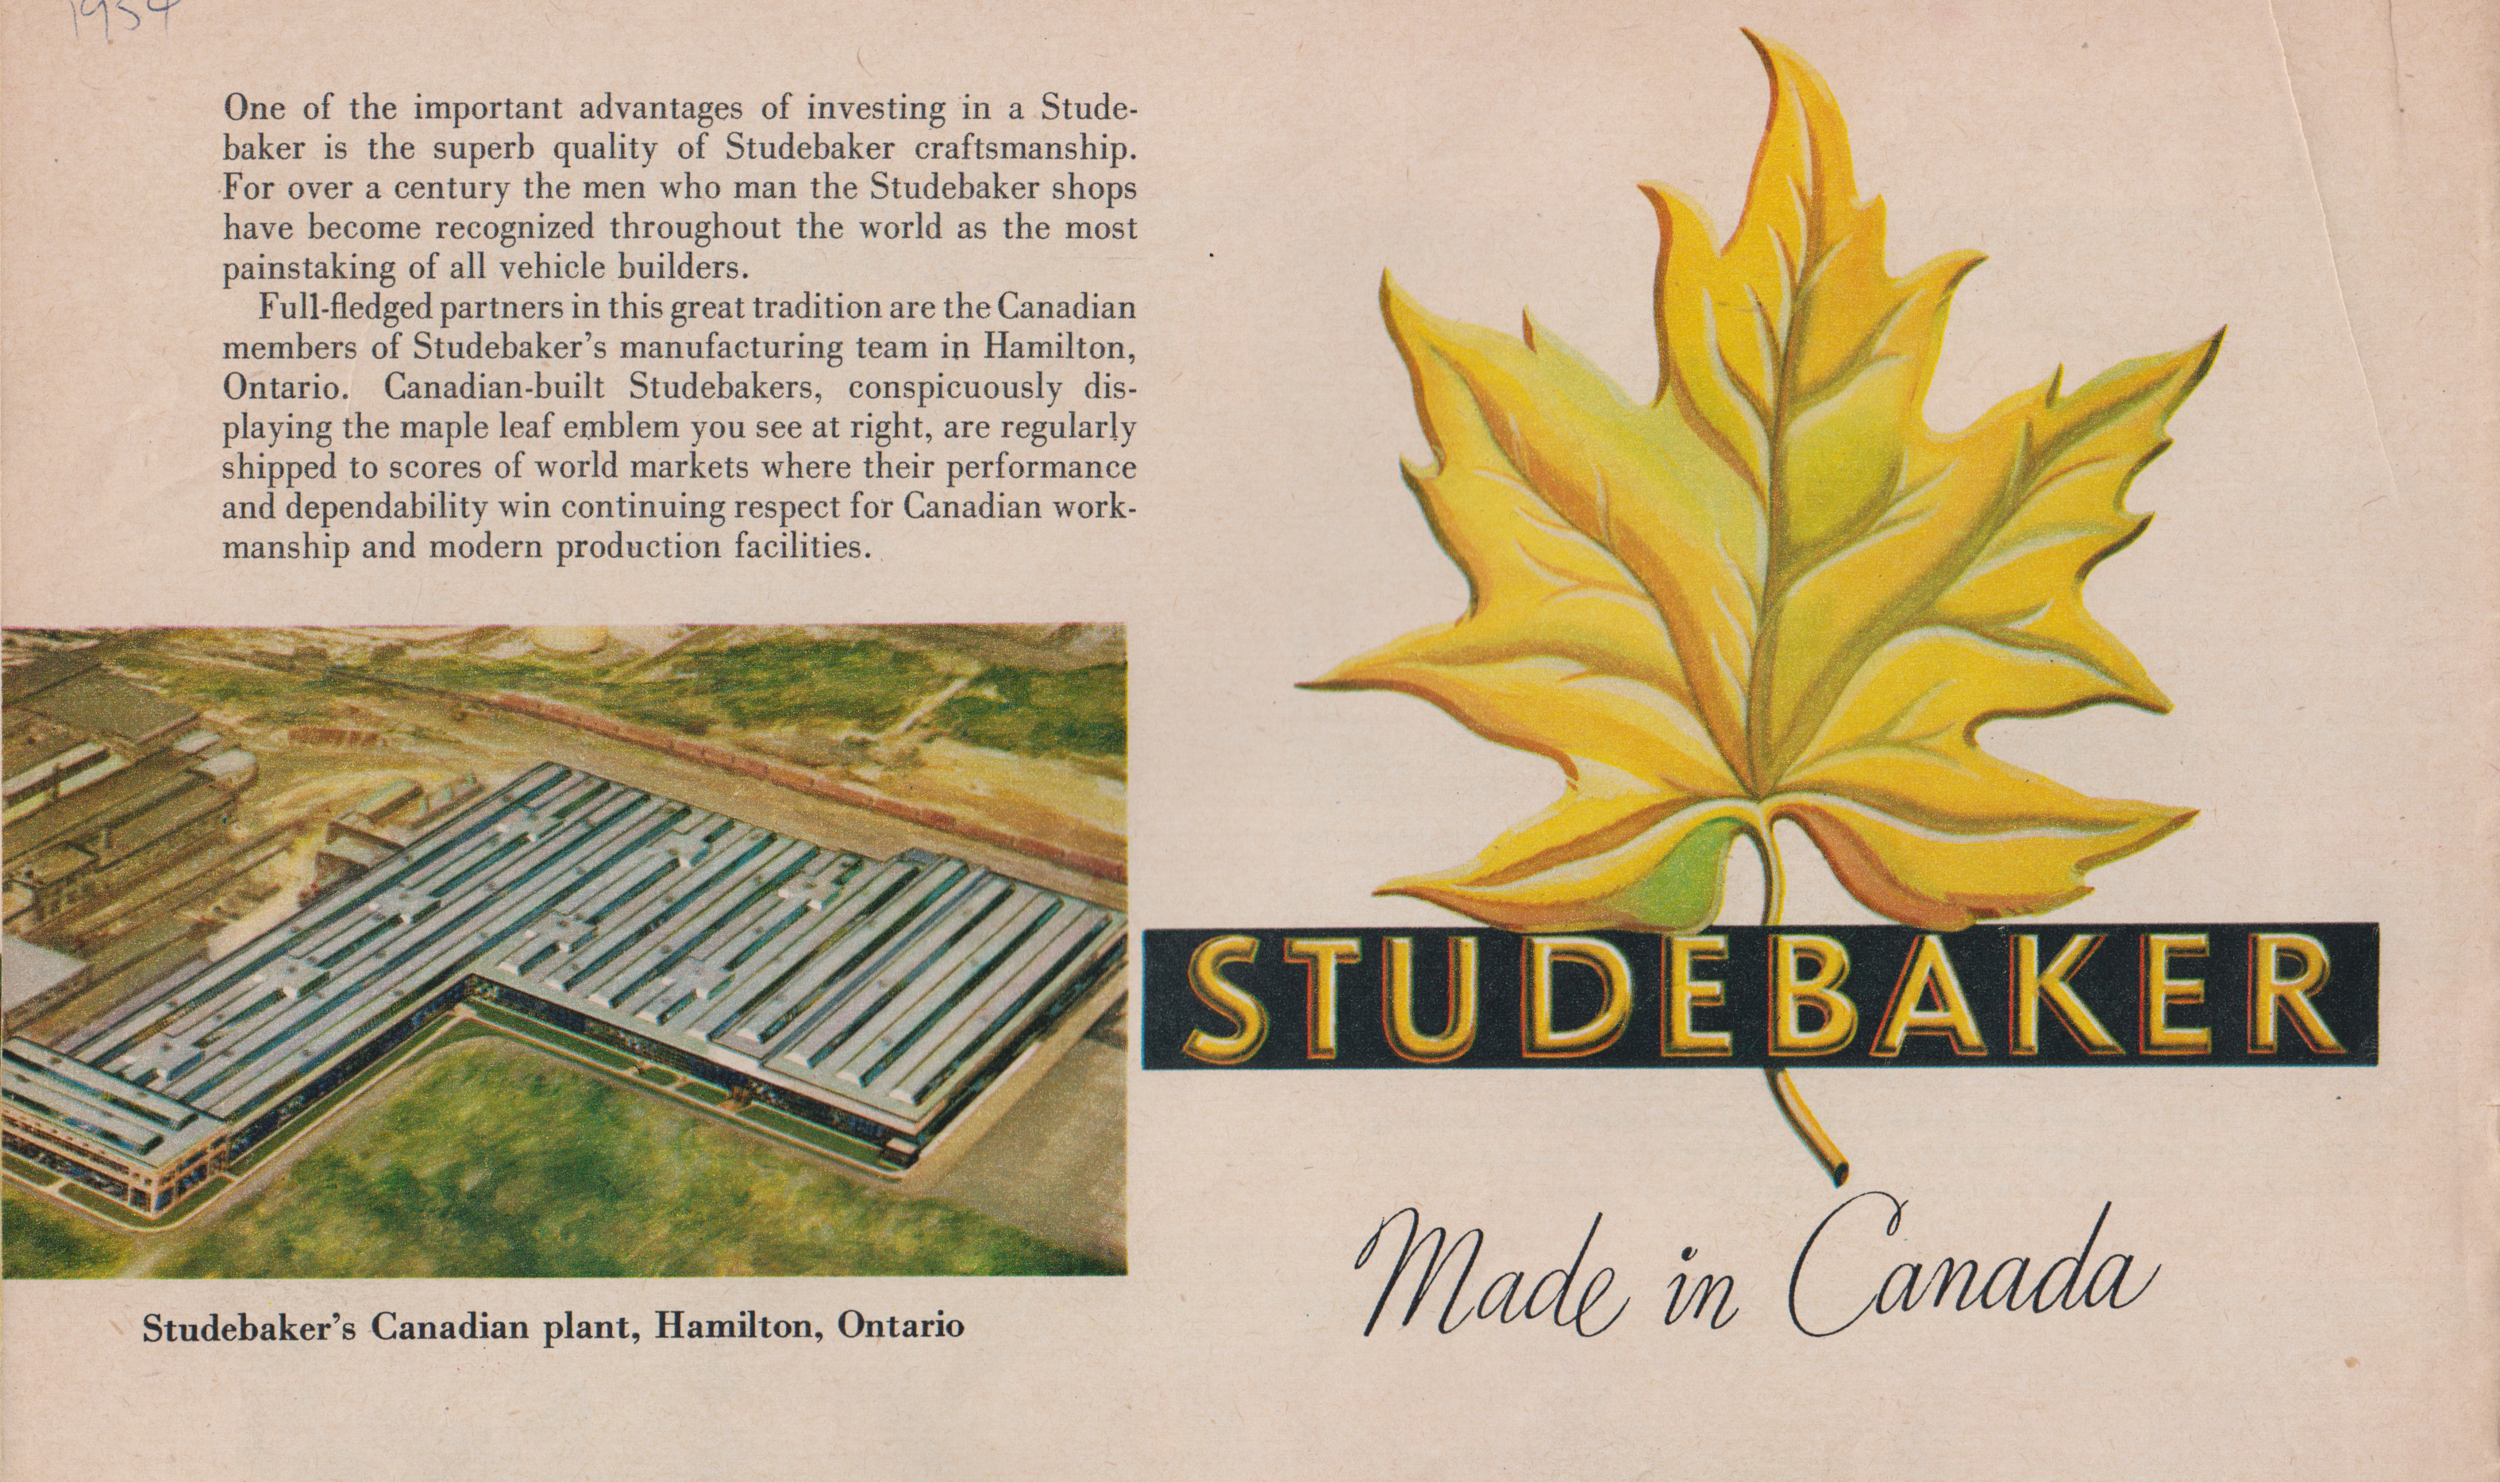 Studebakers were produced in Hamilton, Ontario, from 1948 to 1966. Studebaker brochure, 1954. Collection of the Canadian Automotive Museum.